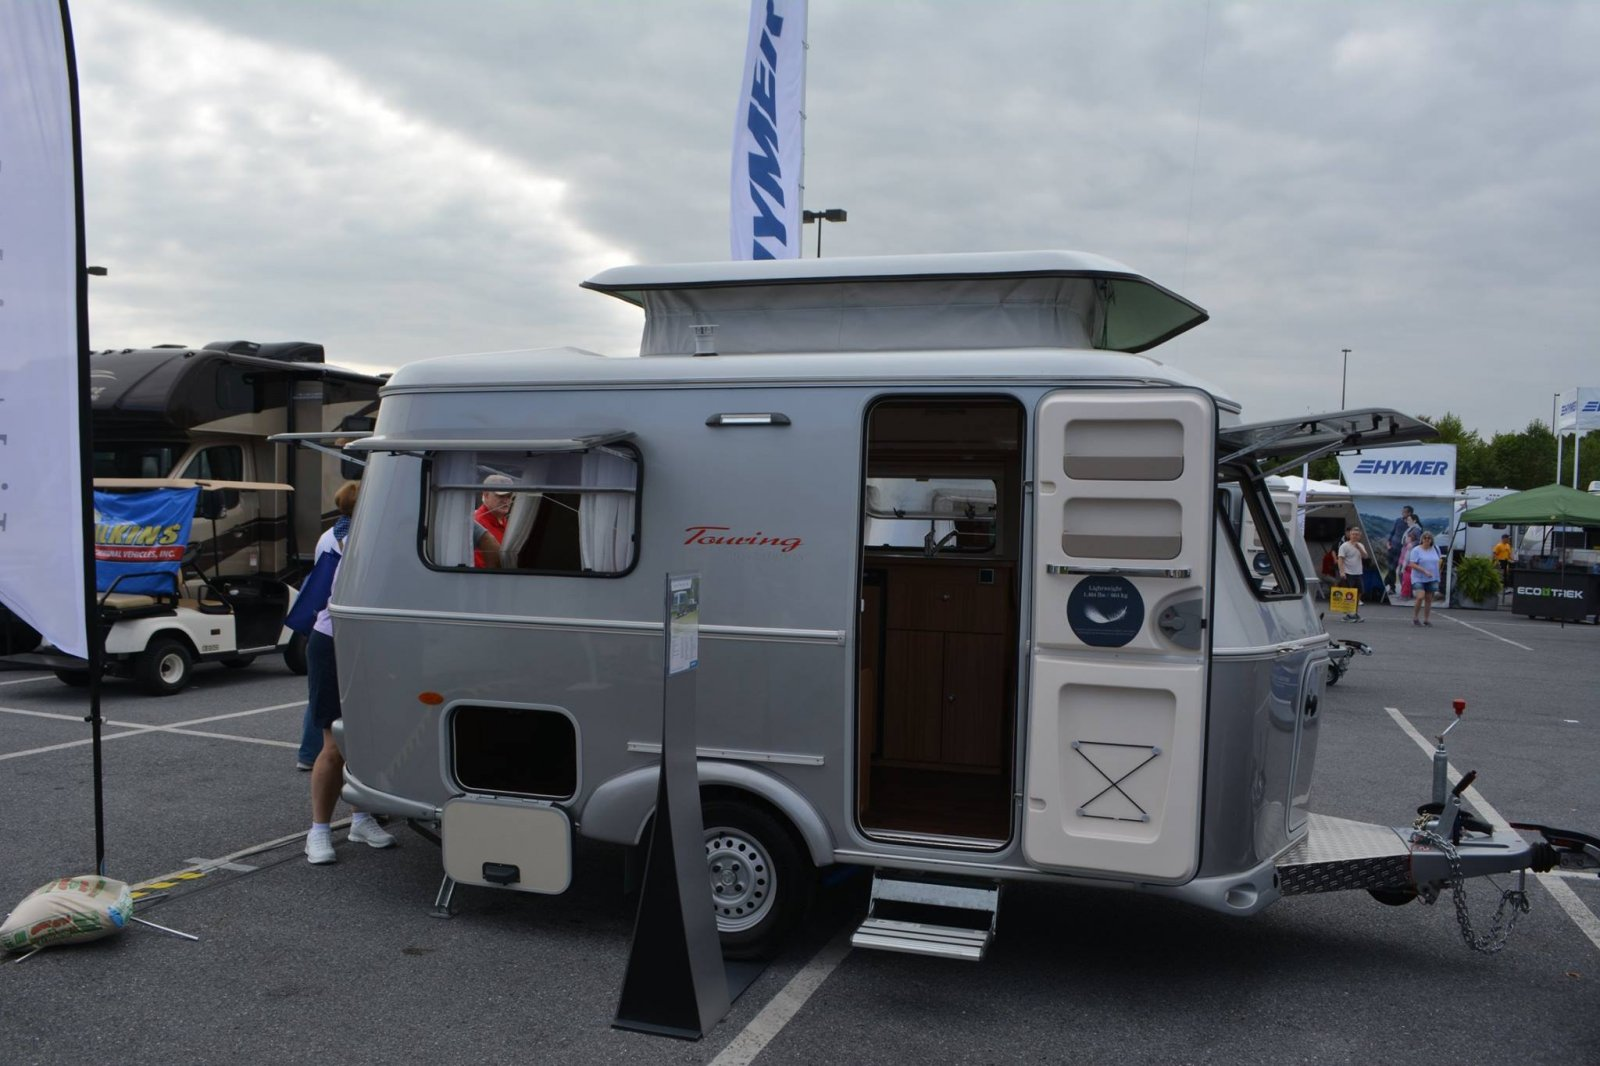 Click image for larger version  Name:hymer.jpg Views:34 Size:209.9 KB ID:271973